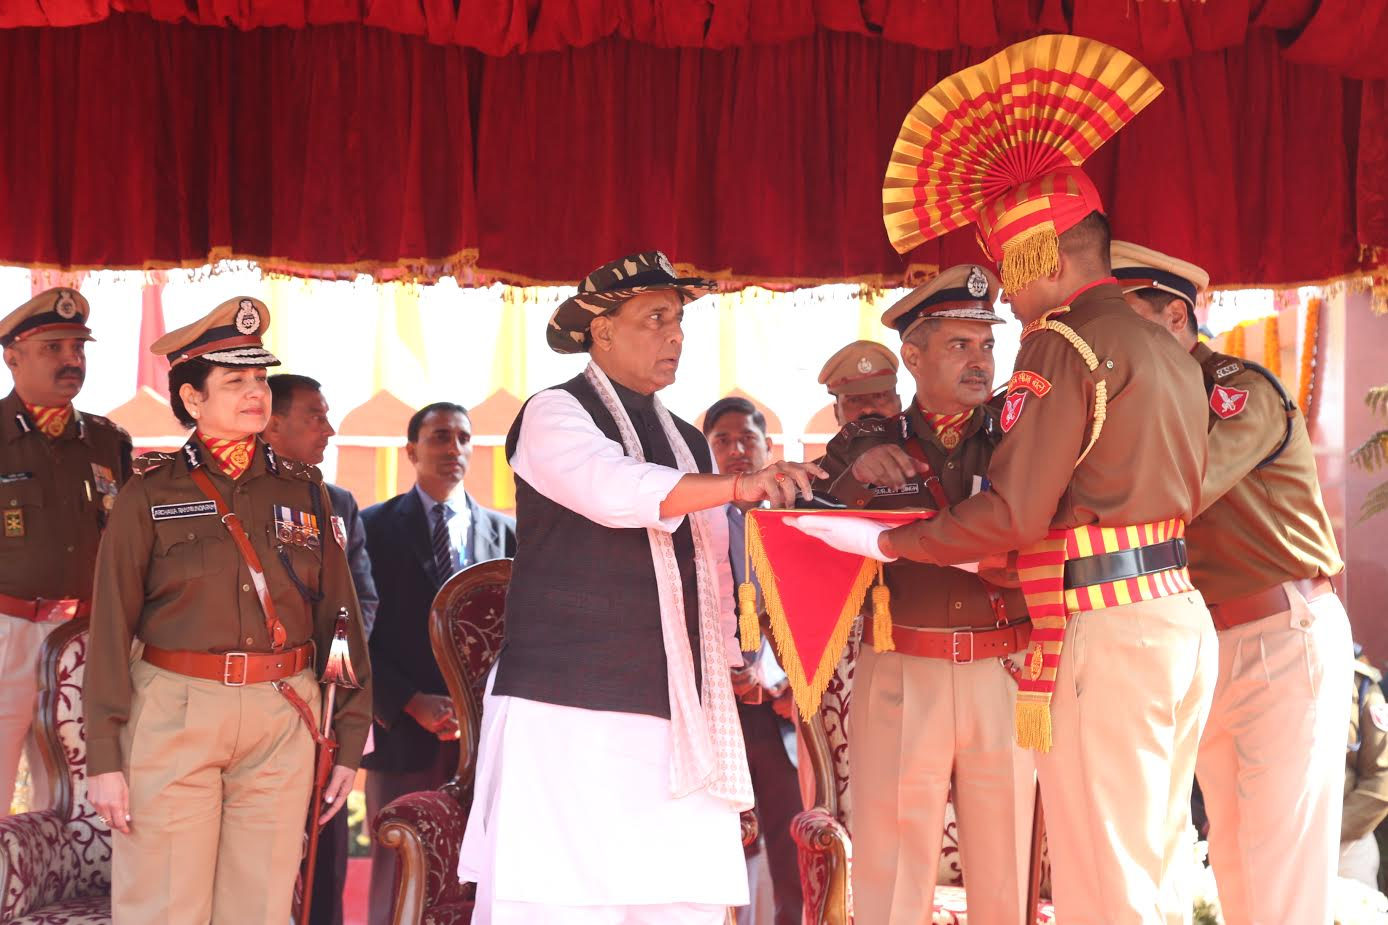 shri-rajnath-singh-at-53rd-foundation-day-of-ssb-1